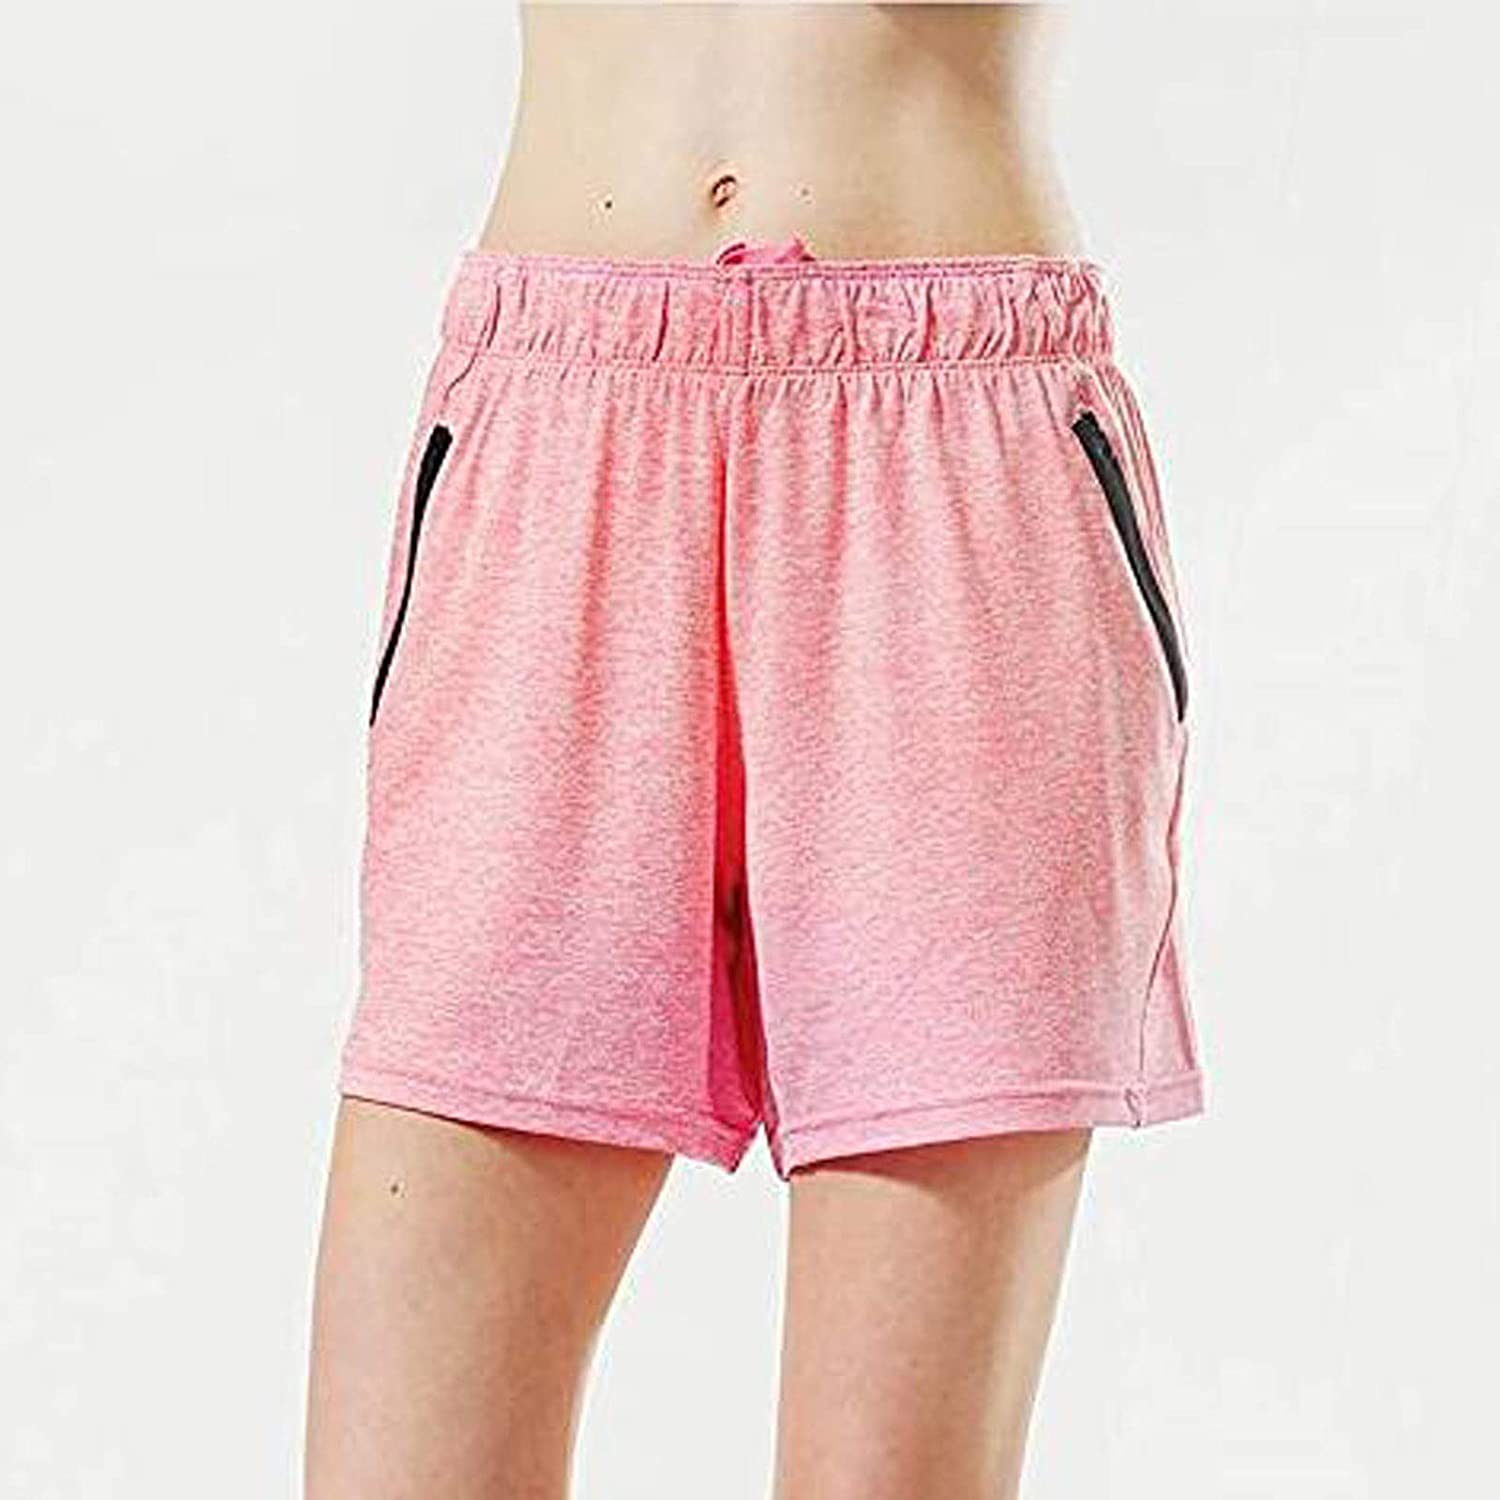 Cbcbtwo Yoga Pants Fashion Casual Mid Cotton High Elastic Waist Active Solid Shorts with Pockets